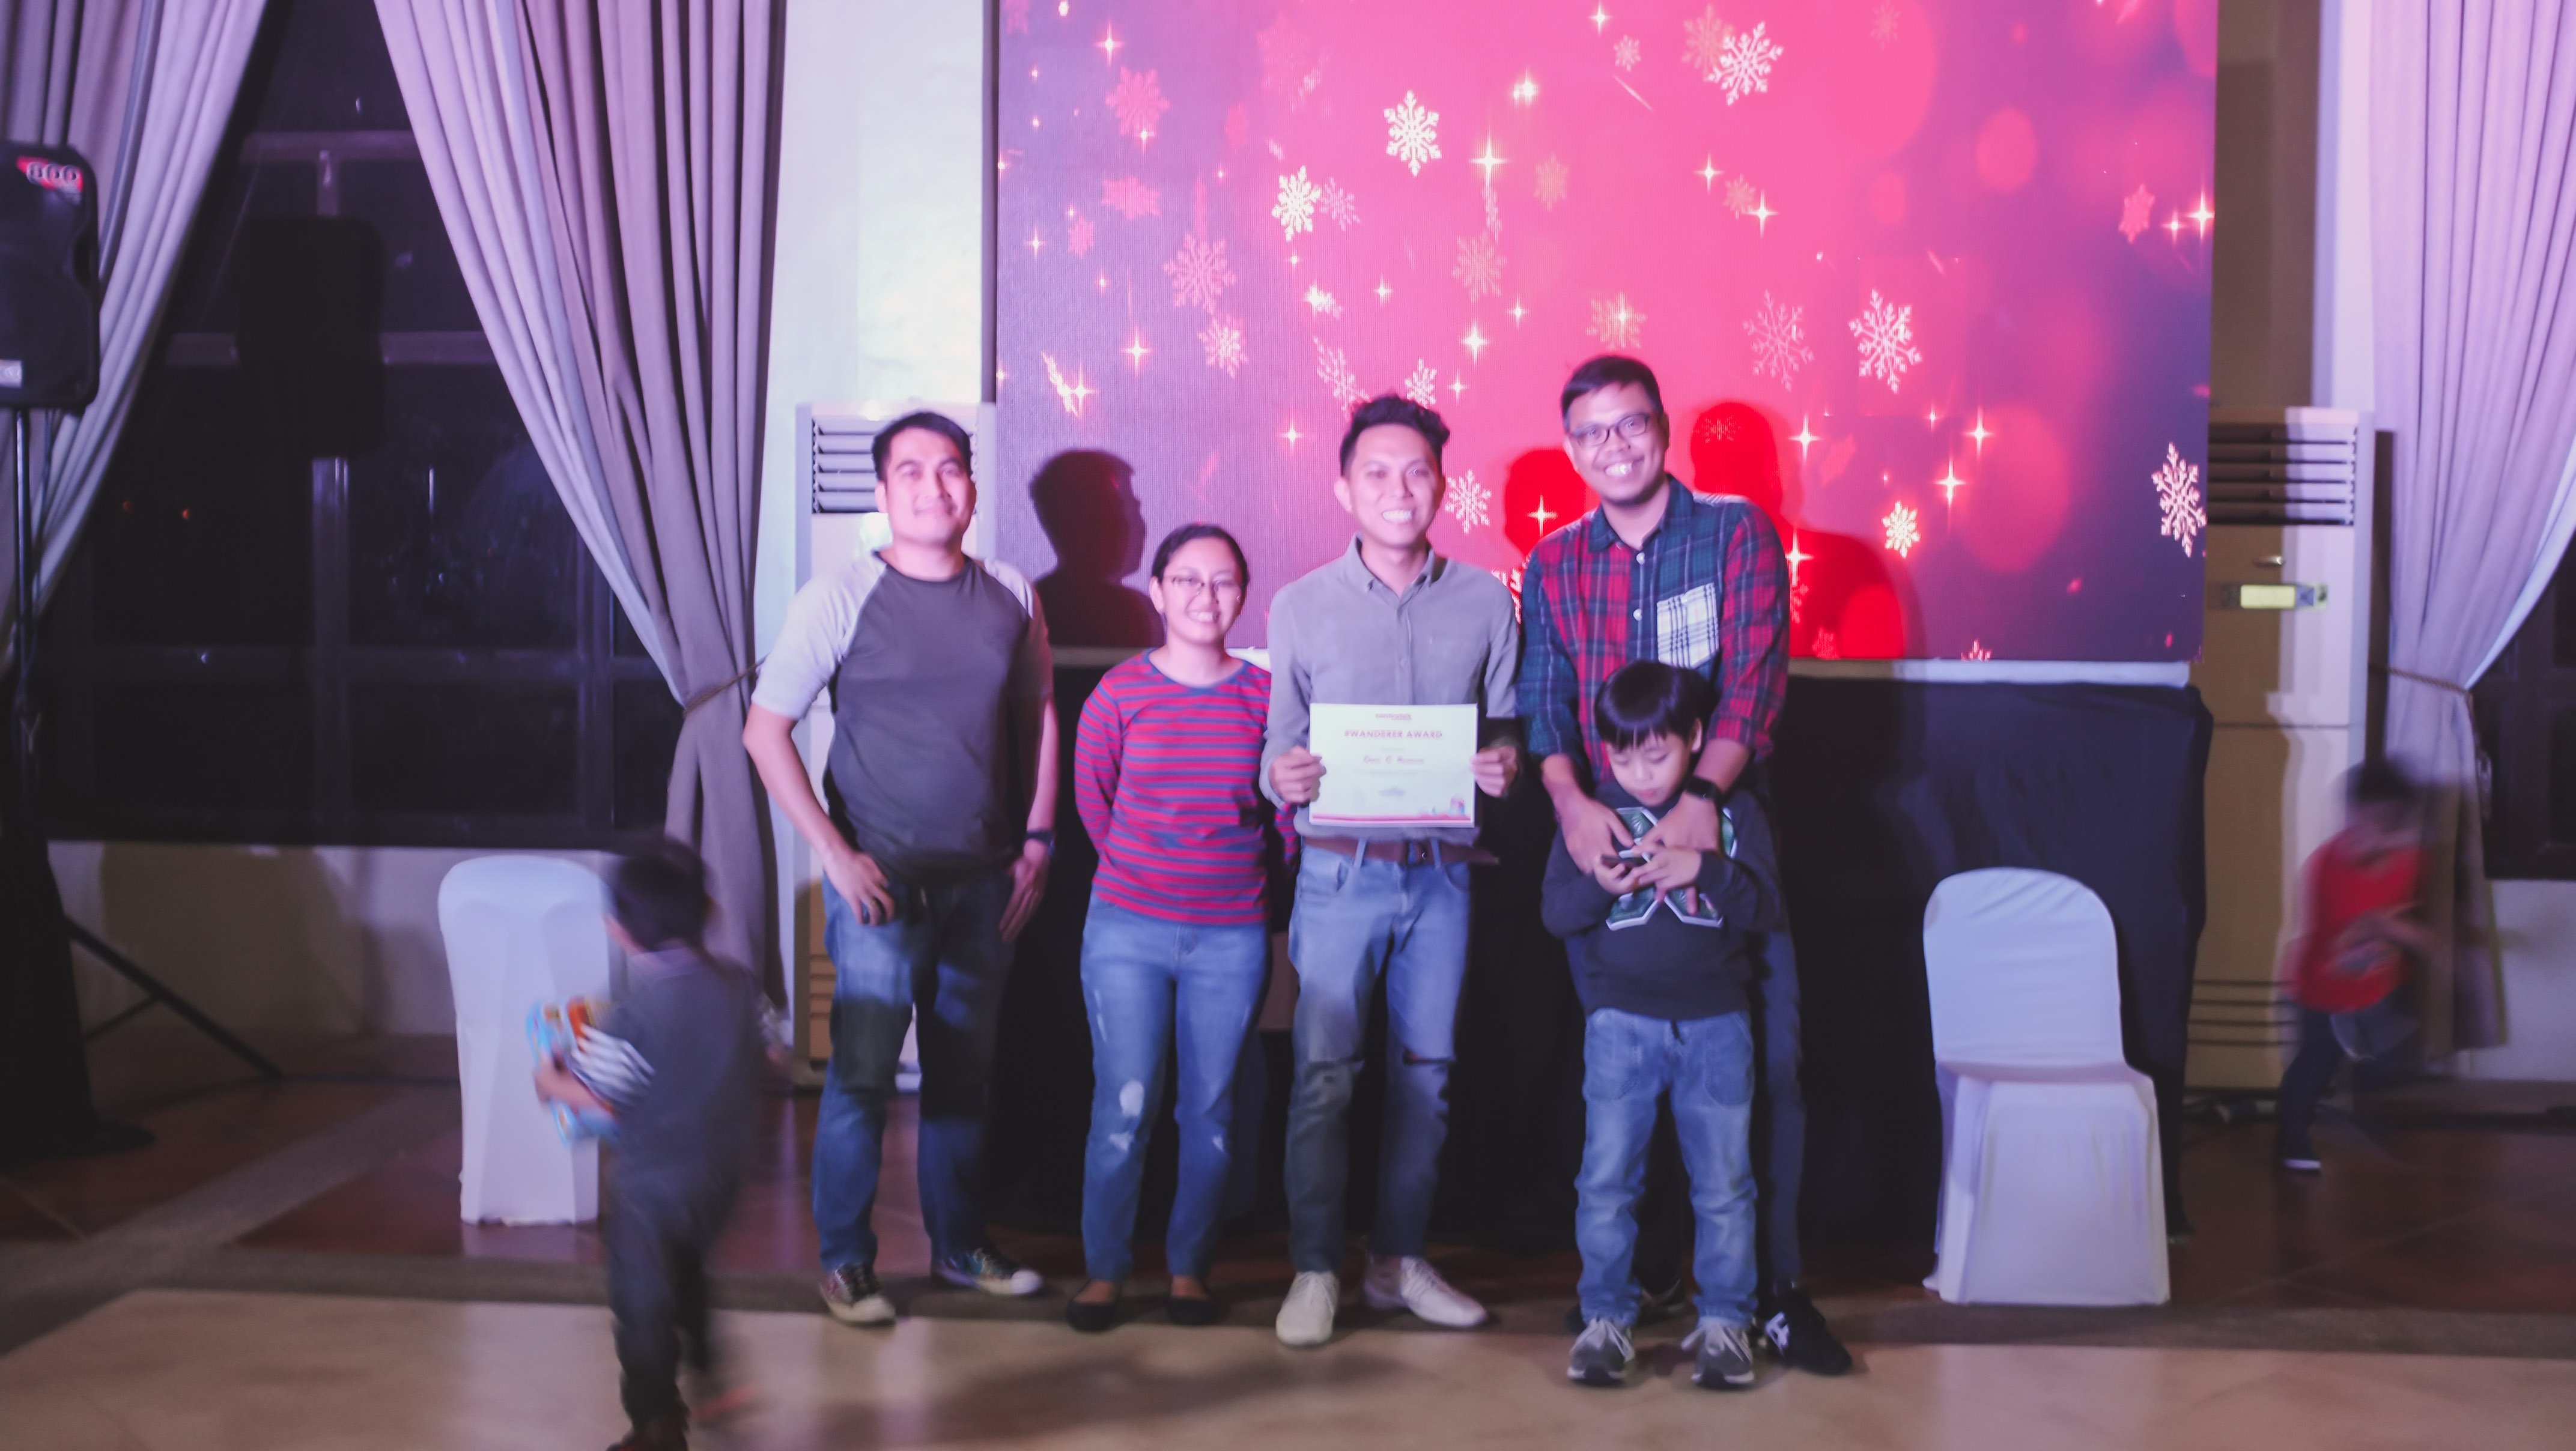 CHRISTMAS PARTY_2018-844288 x 2416